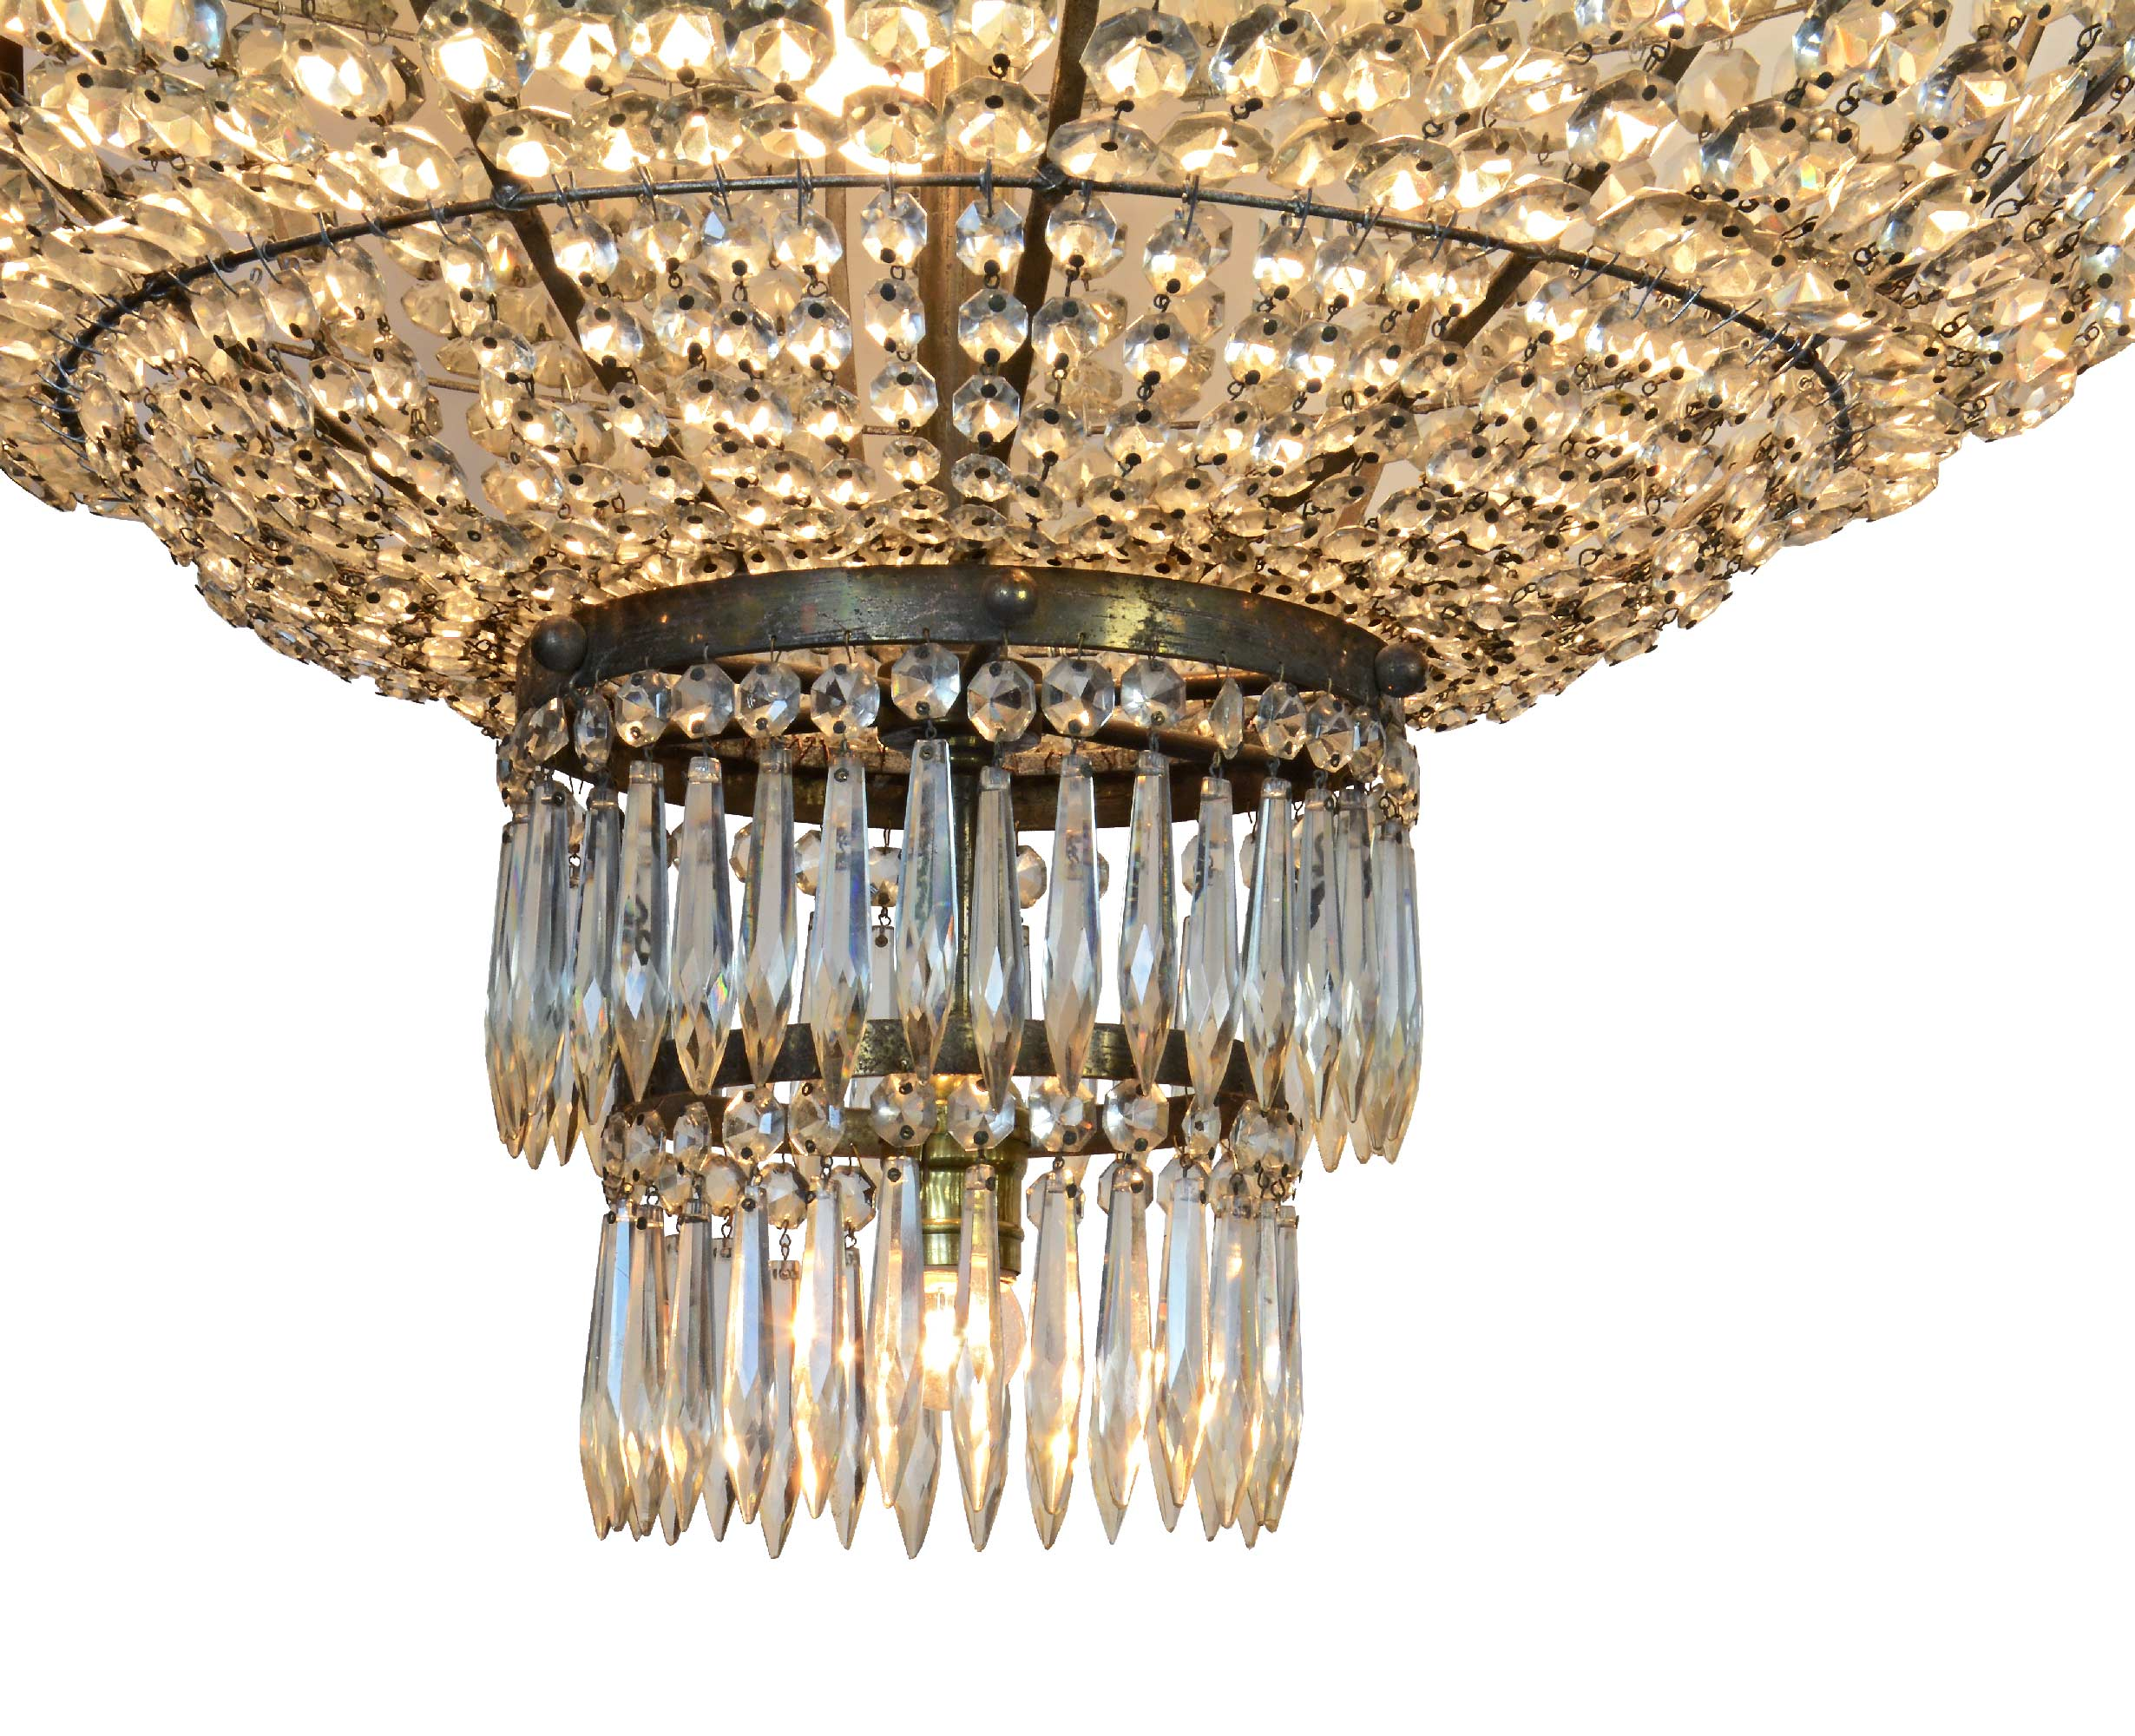 46798-crystal-chandelier-bottom-detail.jpg